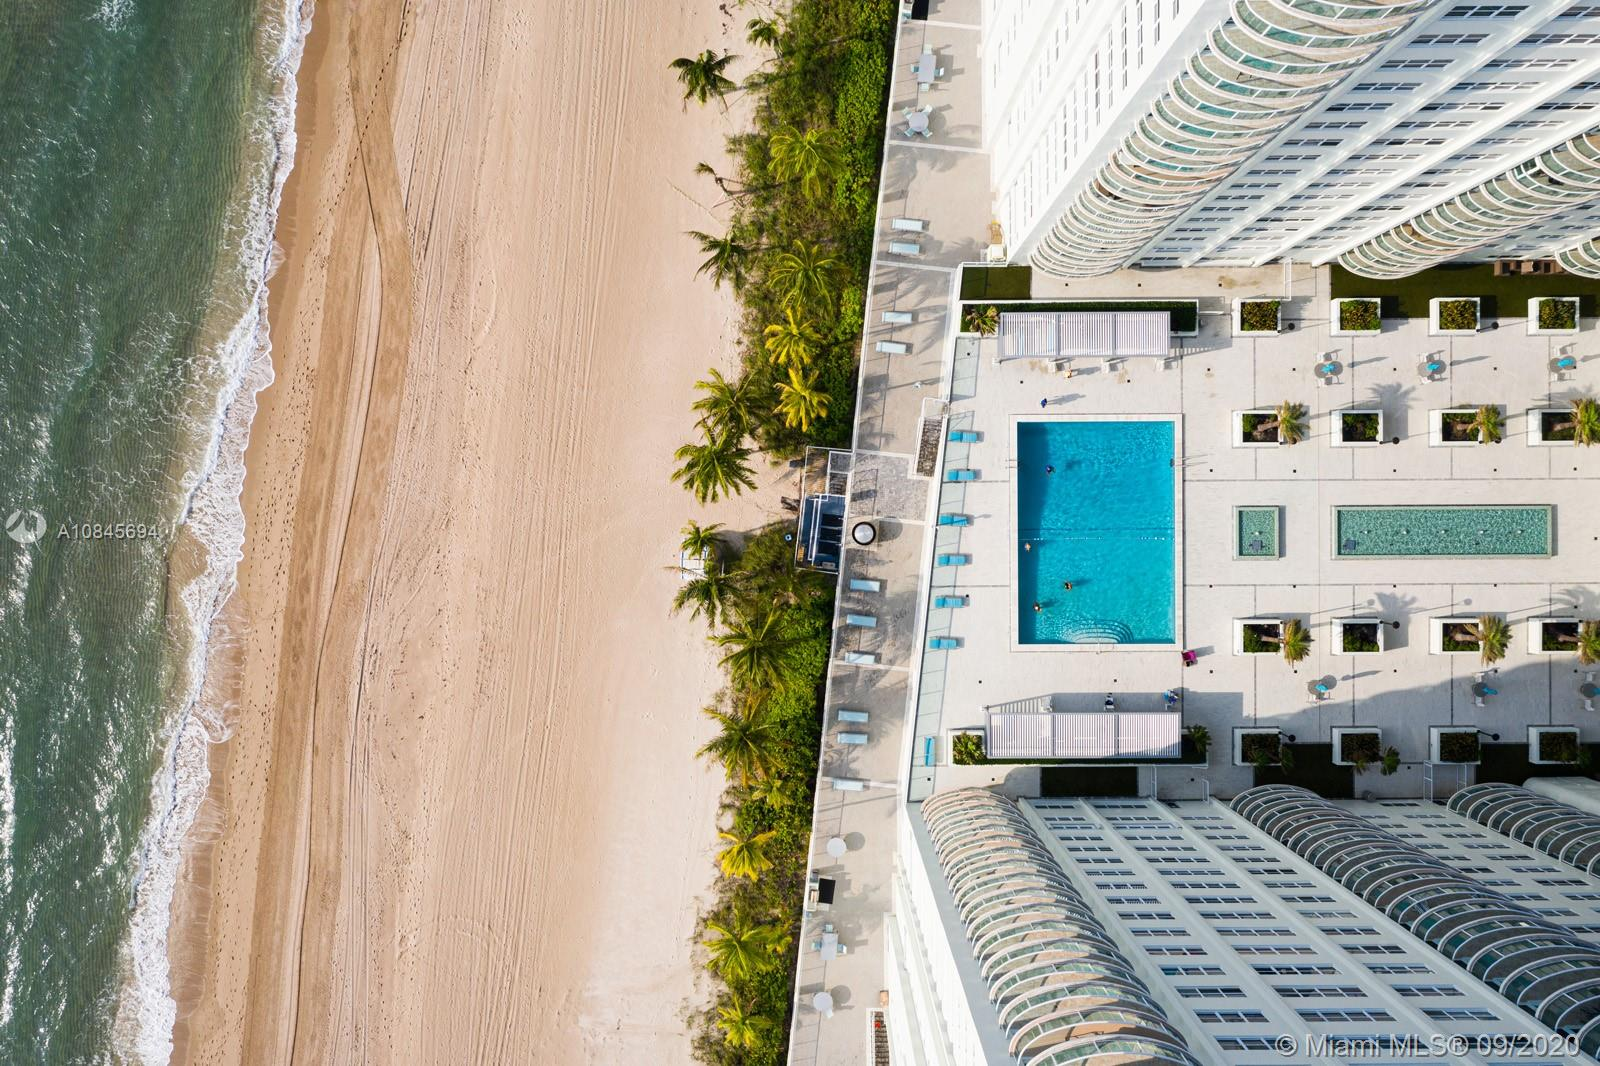 Oceanfront building allows for magnificent sunrise & sunset views from this pristine 16th-floor residence overlooking the ocean & pool on established Galt Ocean Mile Drive in Fort Lauderdale, Florida. Spacious, with over 1,600 sq.ft., offers 2 ensuite bedrooms split plan for privacy. Enjoy great dining room area or eat in the kitchen.Beautifully tiled floors, washer & dryer, upgraded quartz countertops in kitchen, stainless appliances, oversize balcony.Immaculately kept move-in ready. Impact doors & windows. Full-service with manned desk, oceanside pool & cabanas, tennis courts, fitness center, lounge/party room, & on-site manager. Prime location, walk to everything.  No lease 1st yr, pet restrictions. Enjoy the walk-through videos & photos.